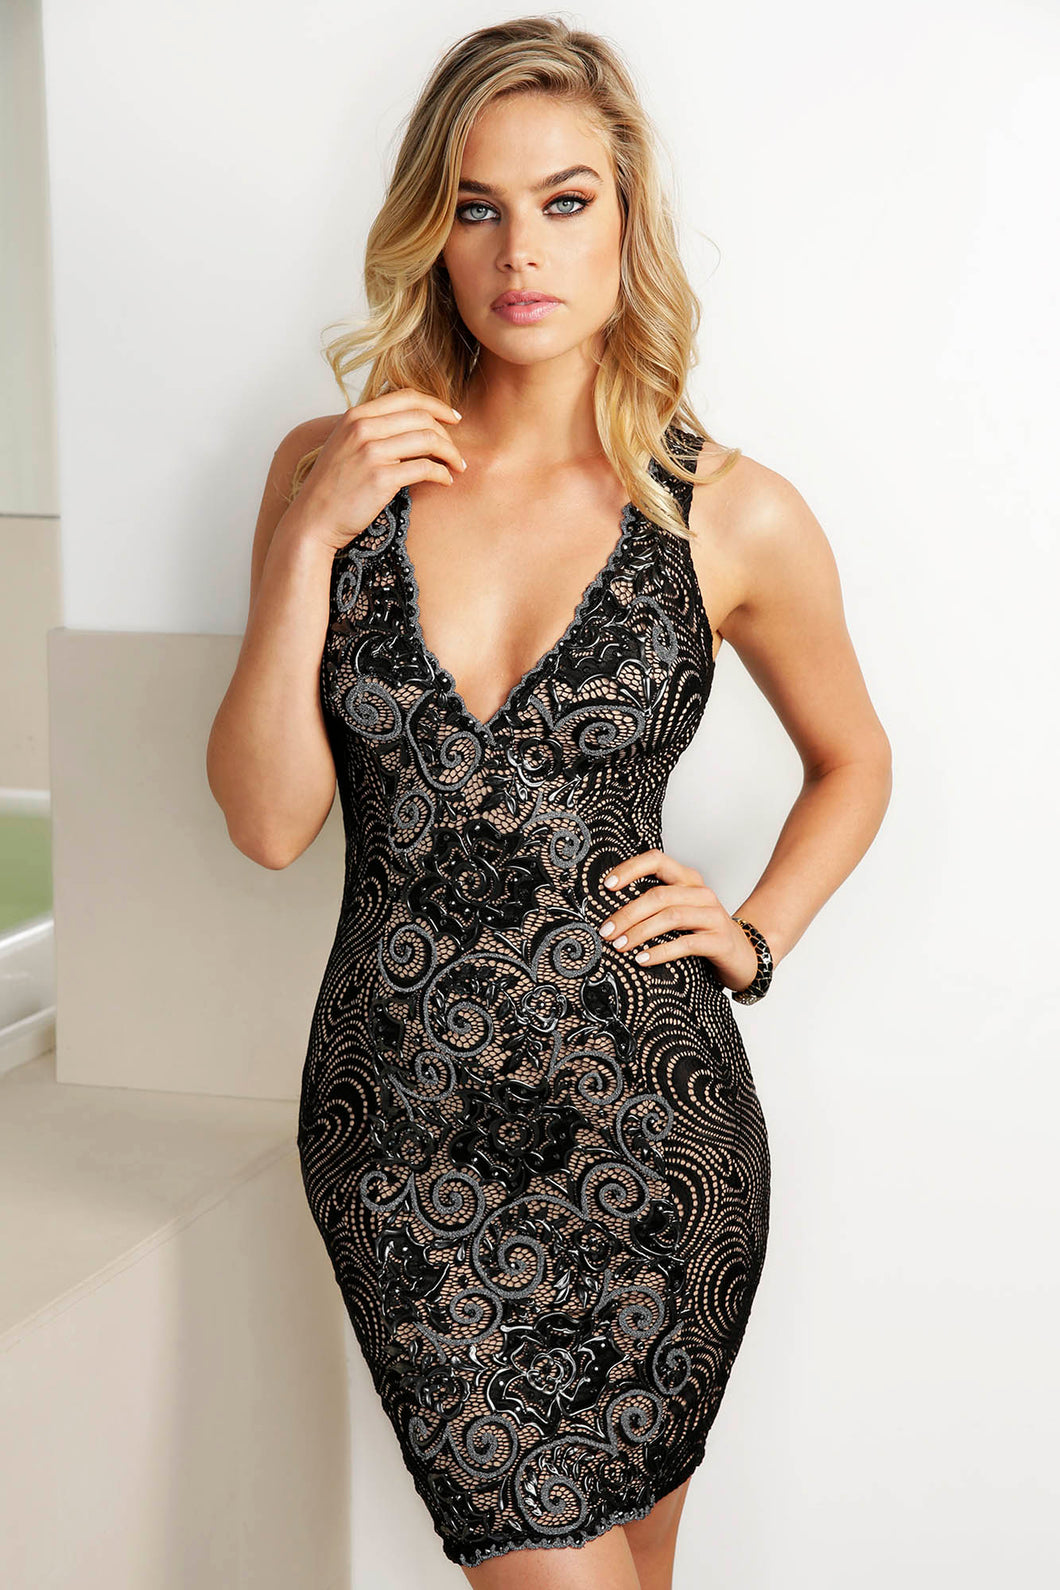 Emy Black Caviar Cocktail Dress - Short Dress - BACCIO Couture